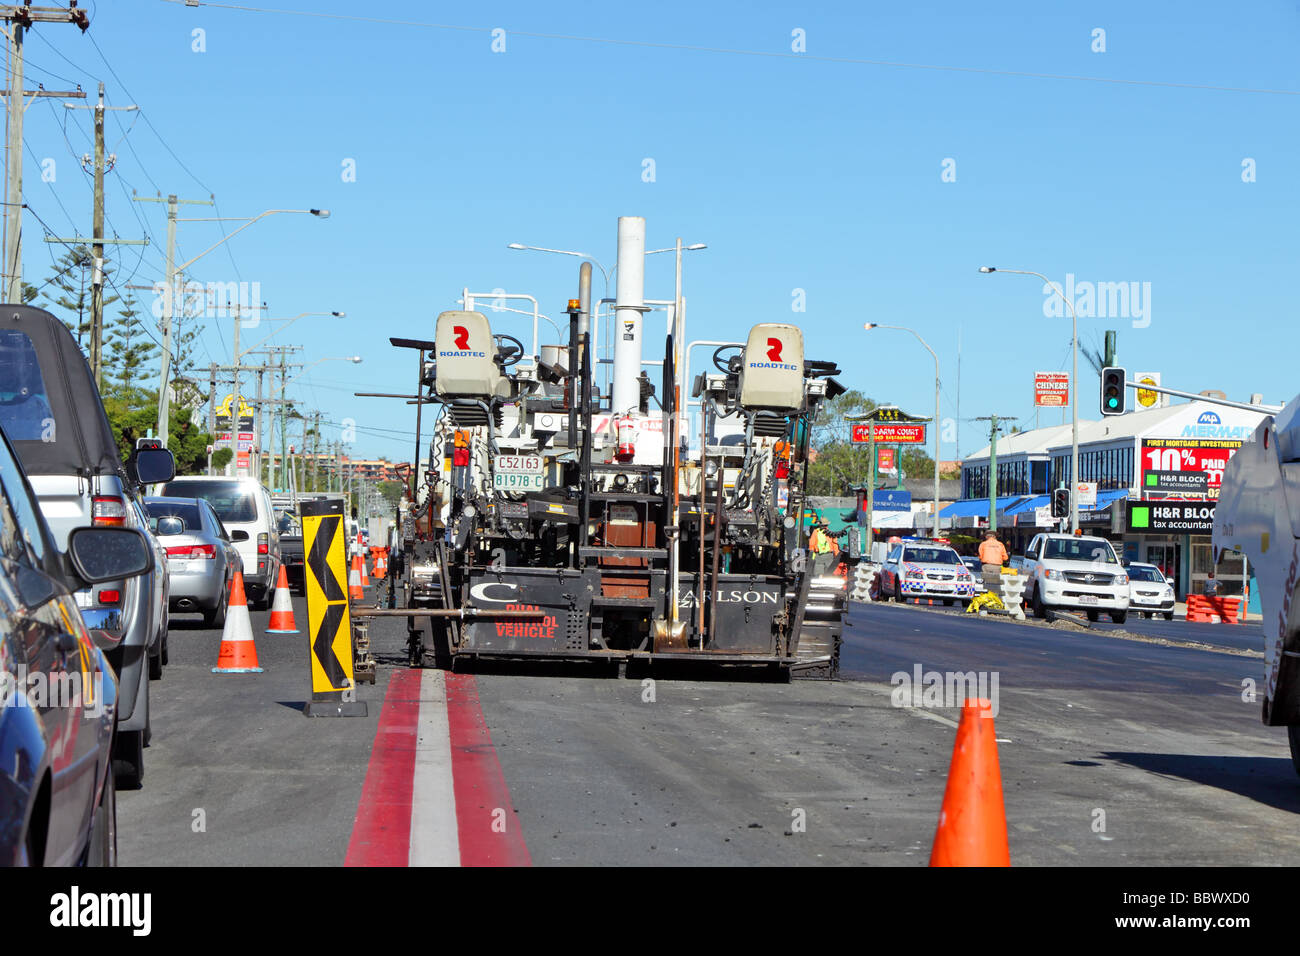 Traffic chaos as roadway is paved during peak hour using machinery and trucks - Stock Image